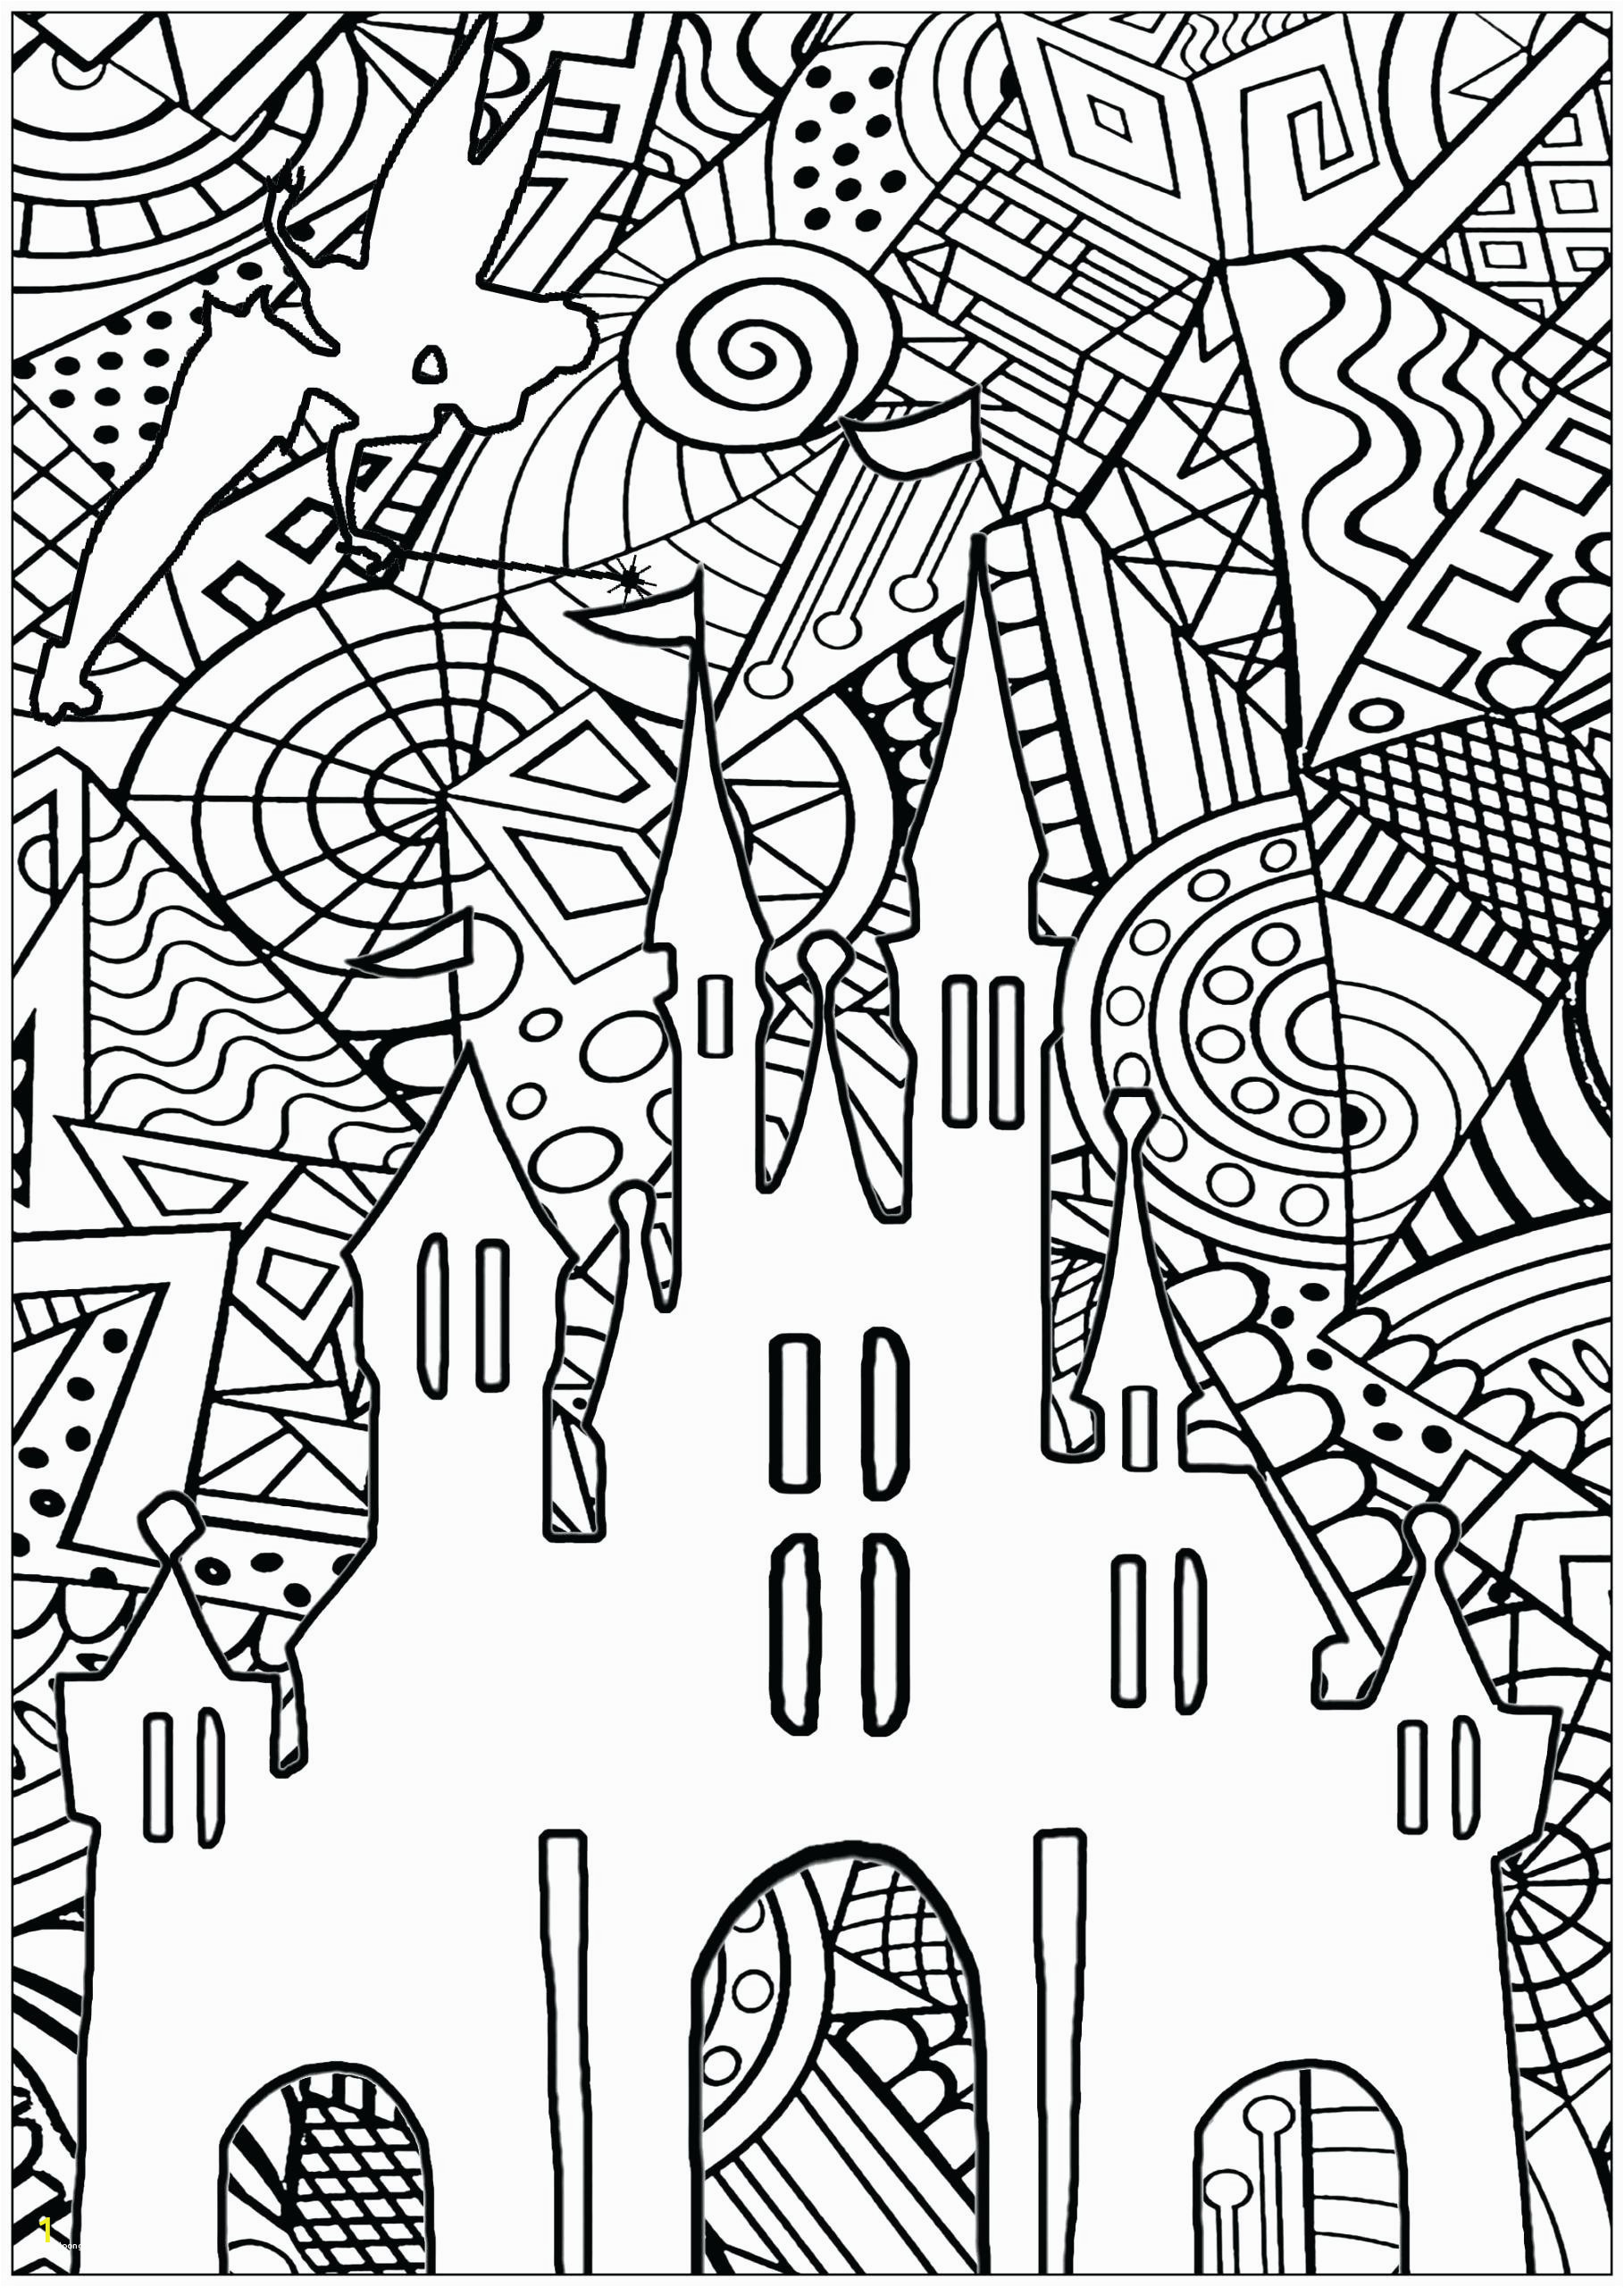 printable mandala coloring pages for adults awesome disney coloring pages for adults heejin of printable mandala coloring pages for adults